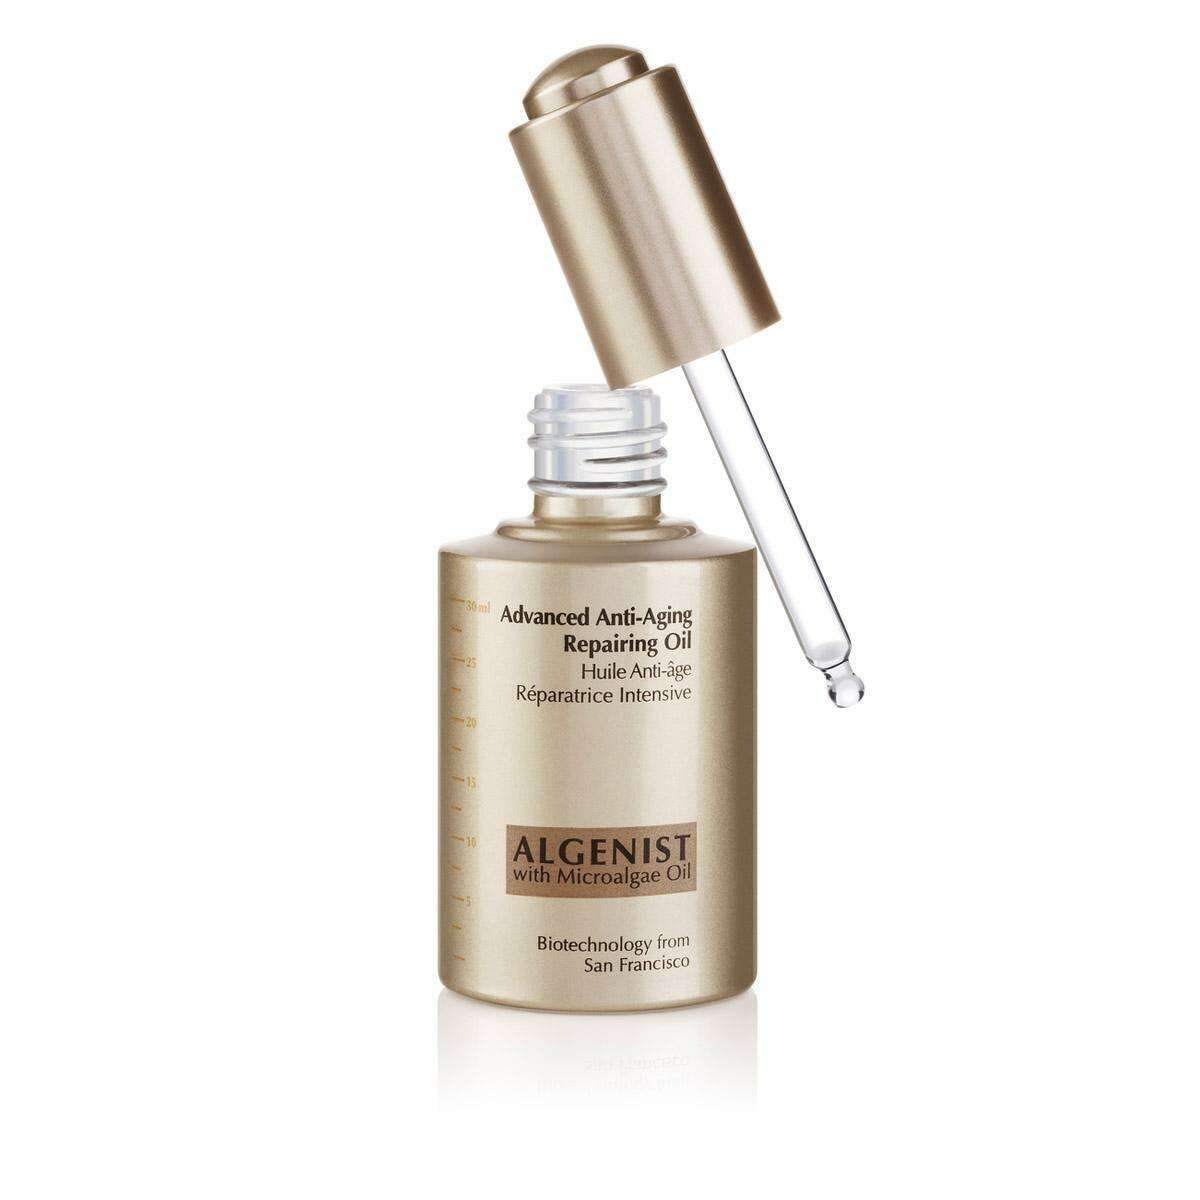 AmorePacific Botanical Radiance Oil is made with antioxidant green tea extracts and rapeseed flower oil to improve skin tone and promote anti-aging; $105 at Sephora stores.